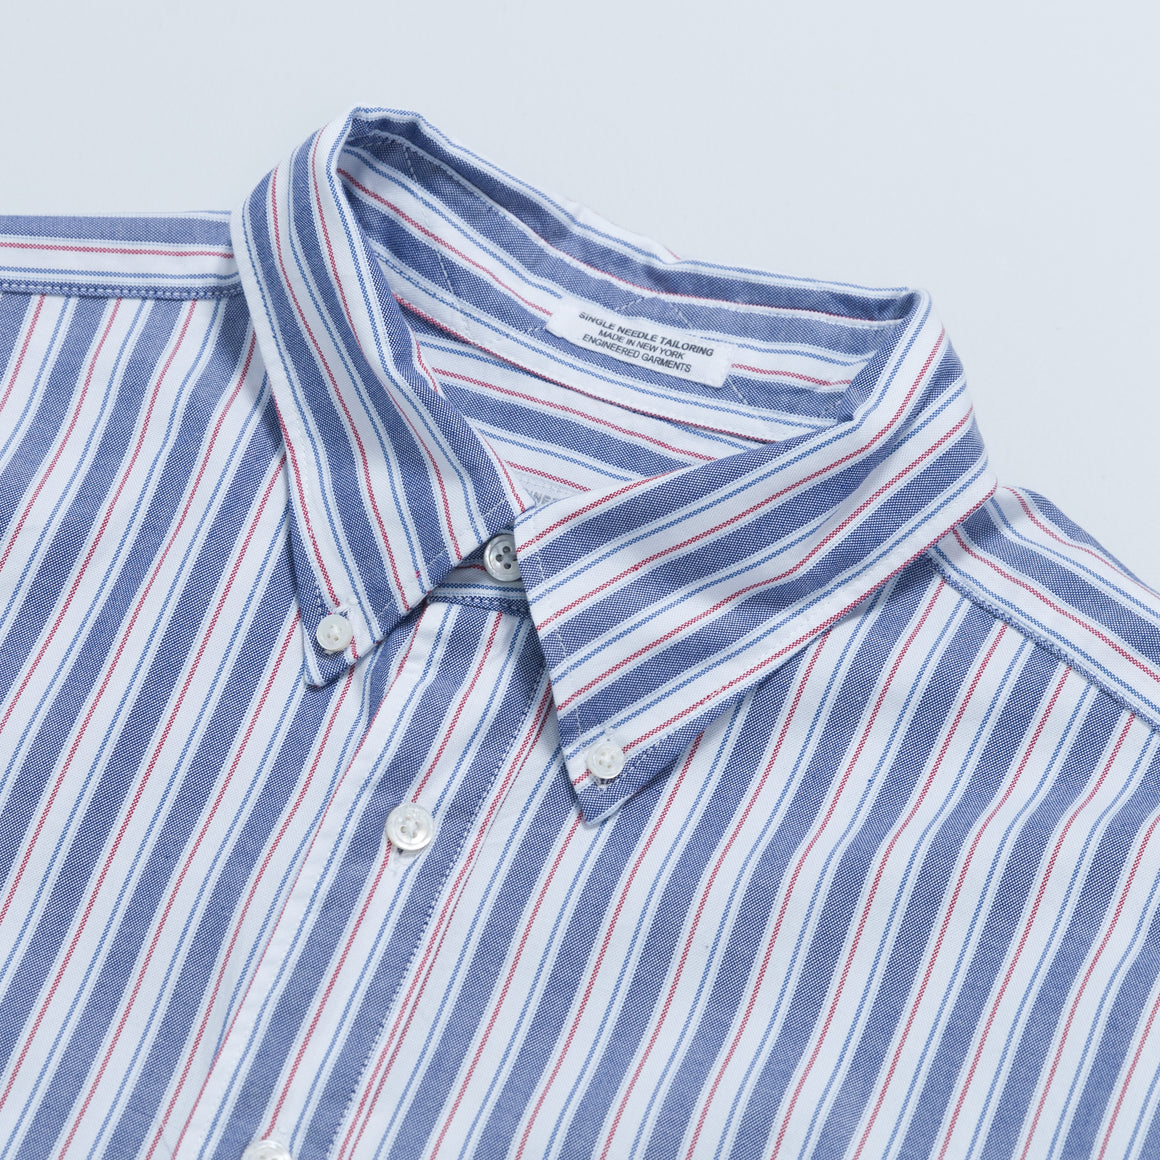 19 Century BD Shirt - White Blue Red Oxford Regimental Stripe - Up There